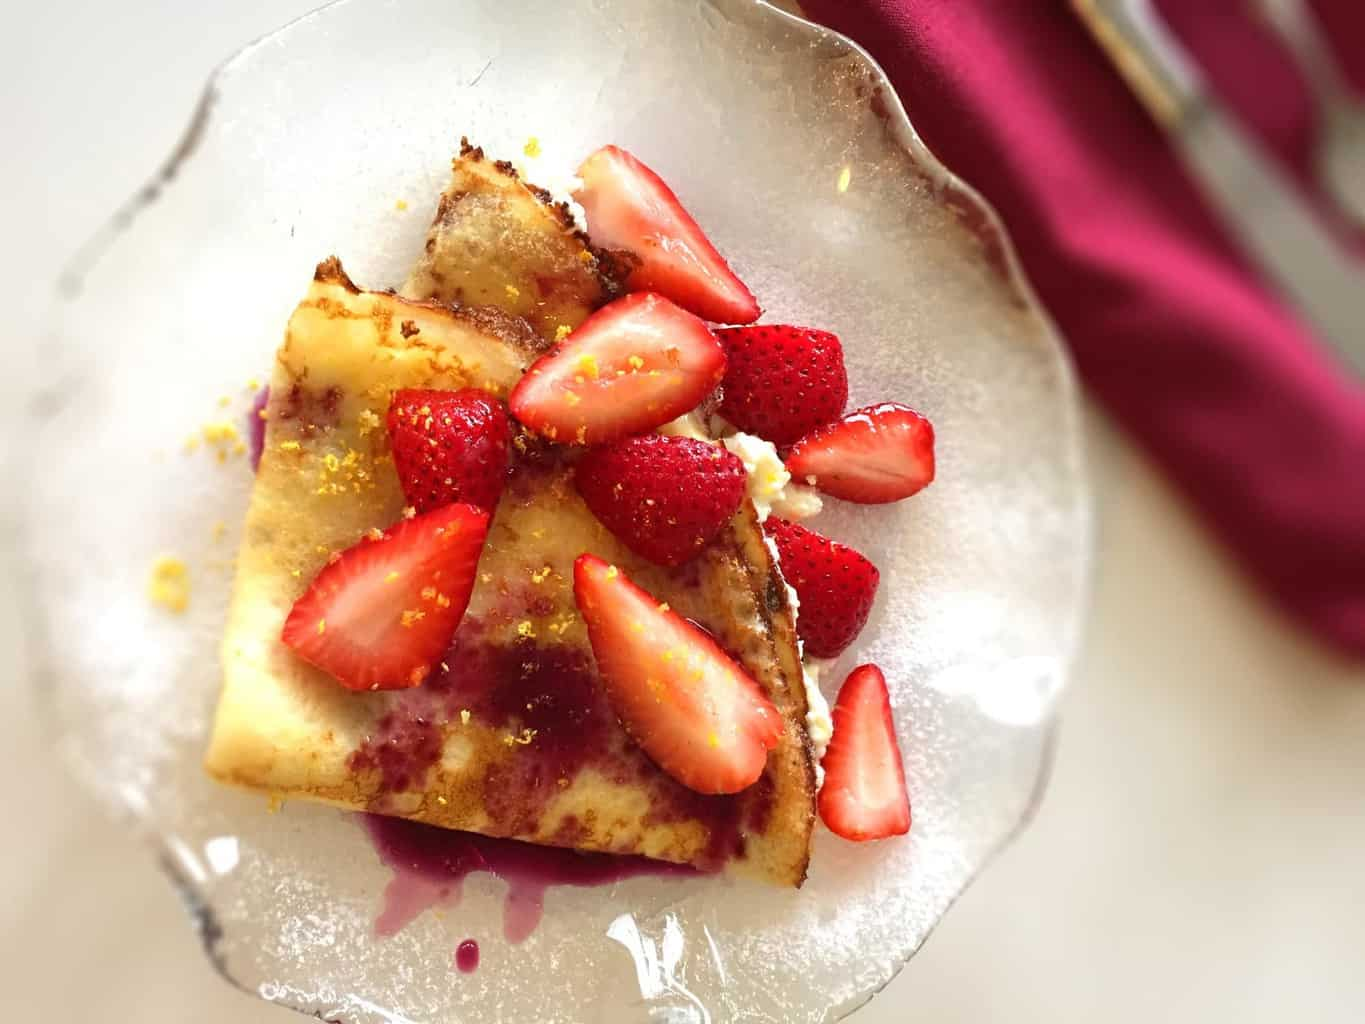 Creamy and tender strawberry and ricotta crepes. Perfect treat for satisfying your sweet tooth.